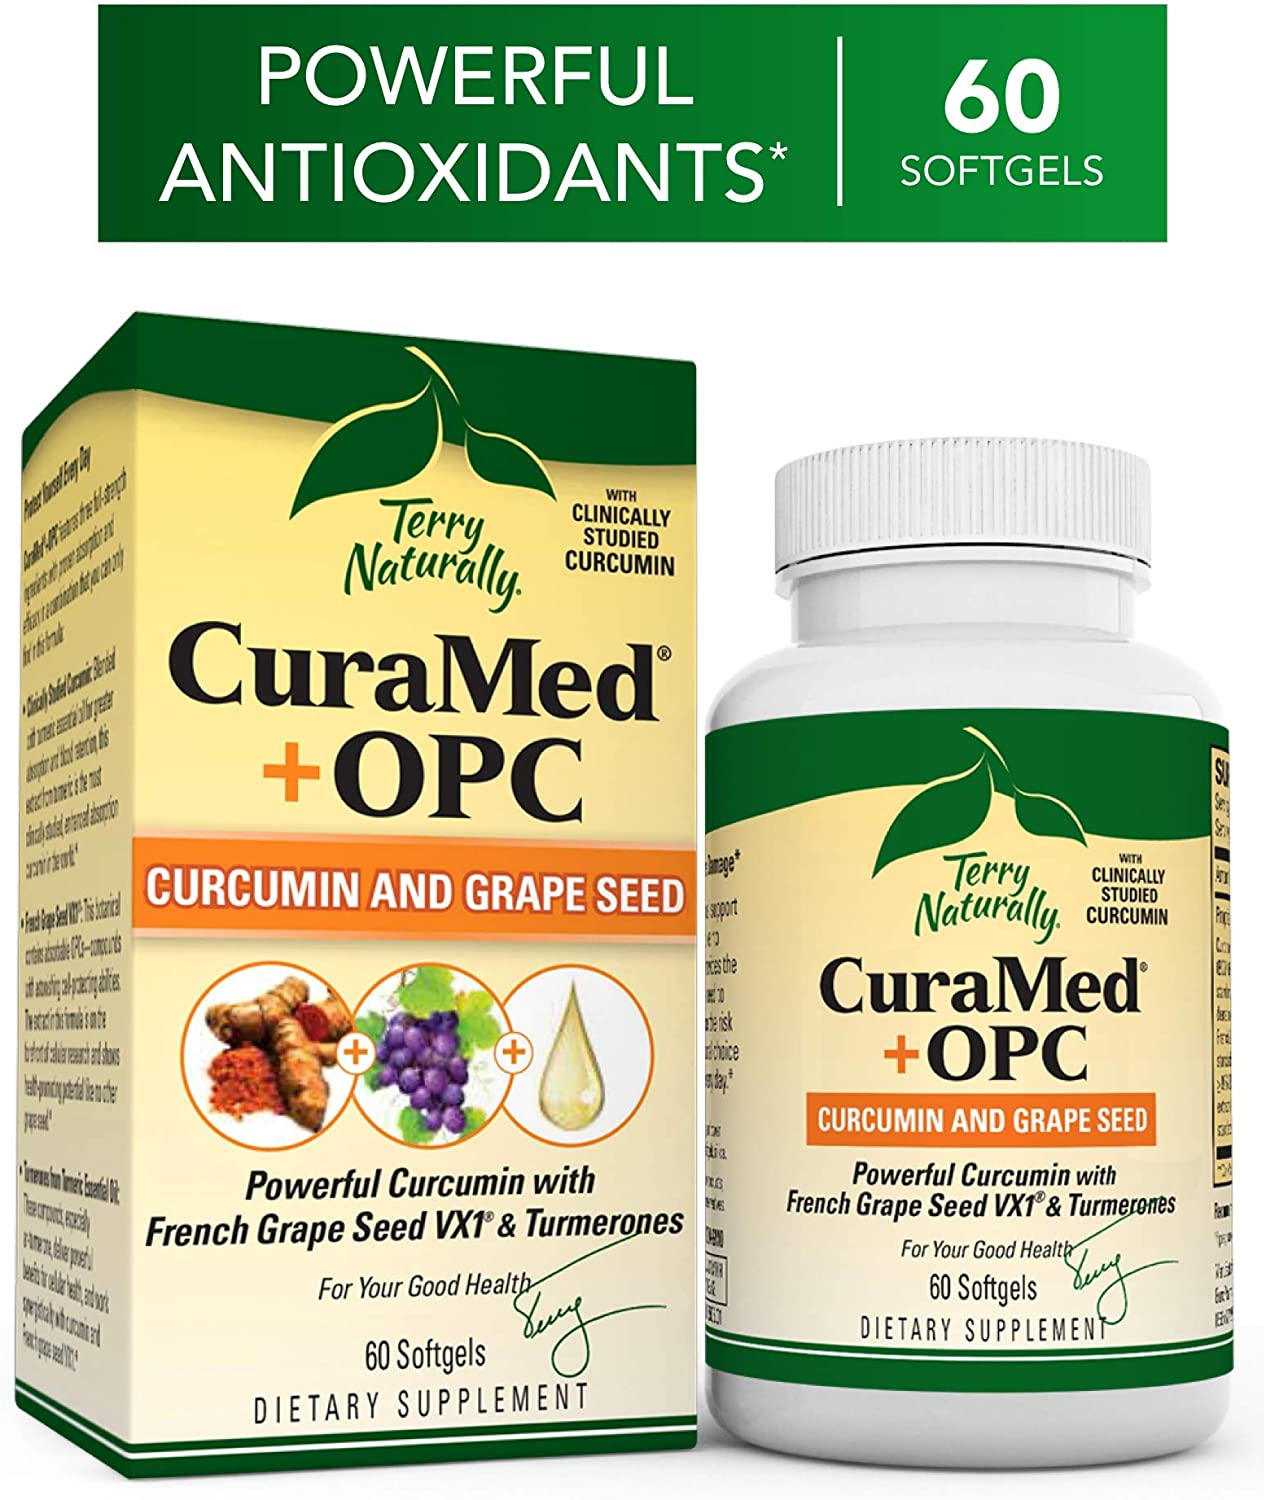 Terry Naturally CuraMed OPC – 60 Softgels – BCM-95 Curcumin French Grape Seed VX1 Supplement, Supports Brain, Heart, Colon, Breast, Prostate Liver Health – Non-GMO, Gluten-Free – 30 Servings